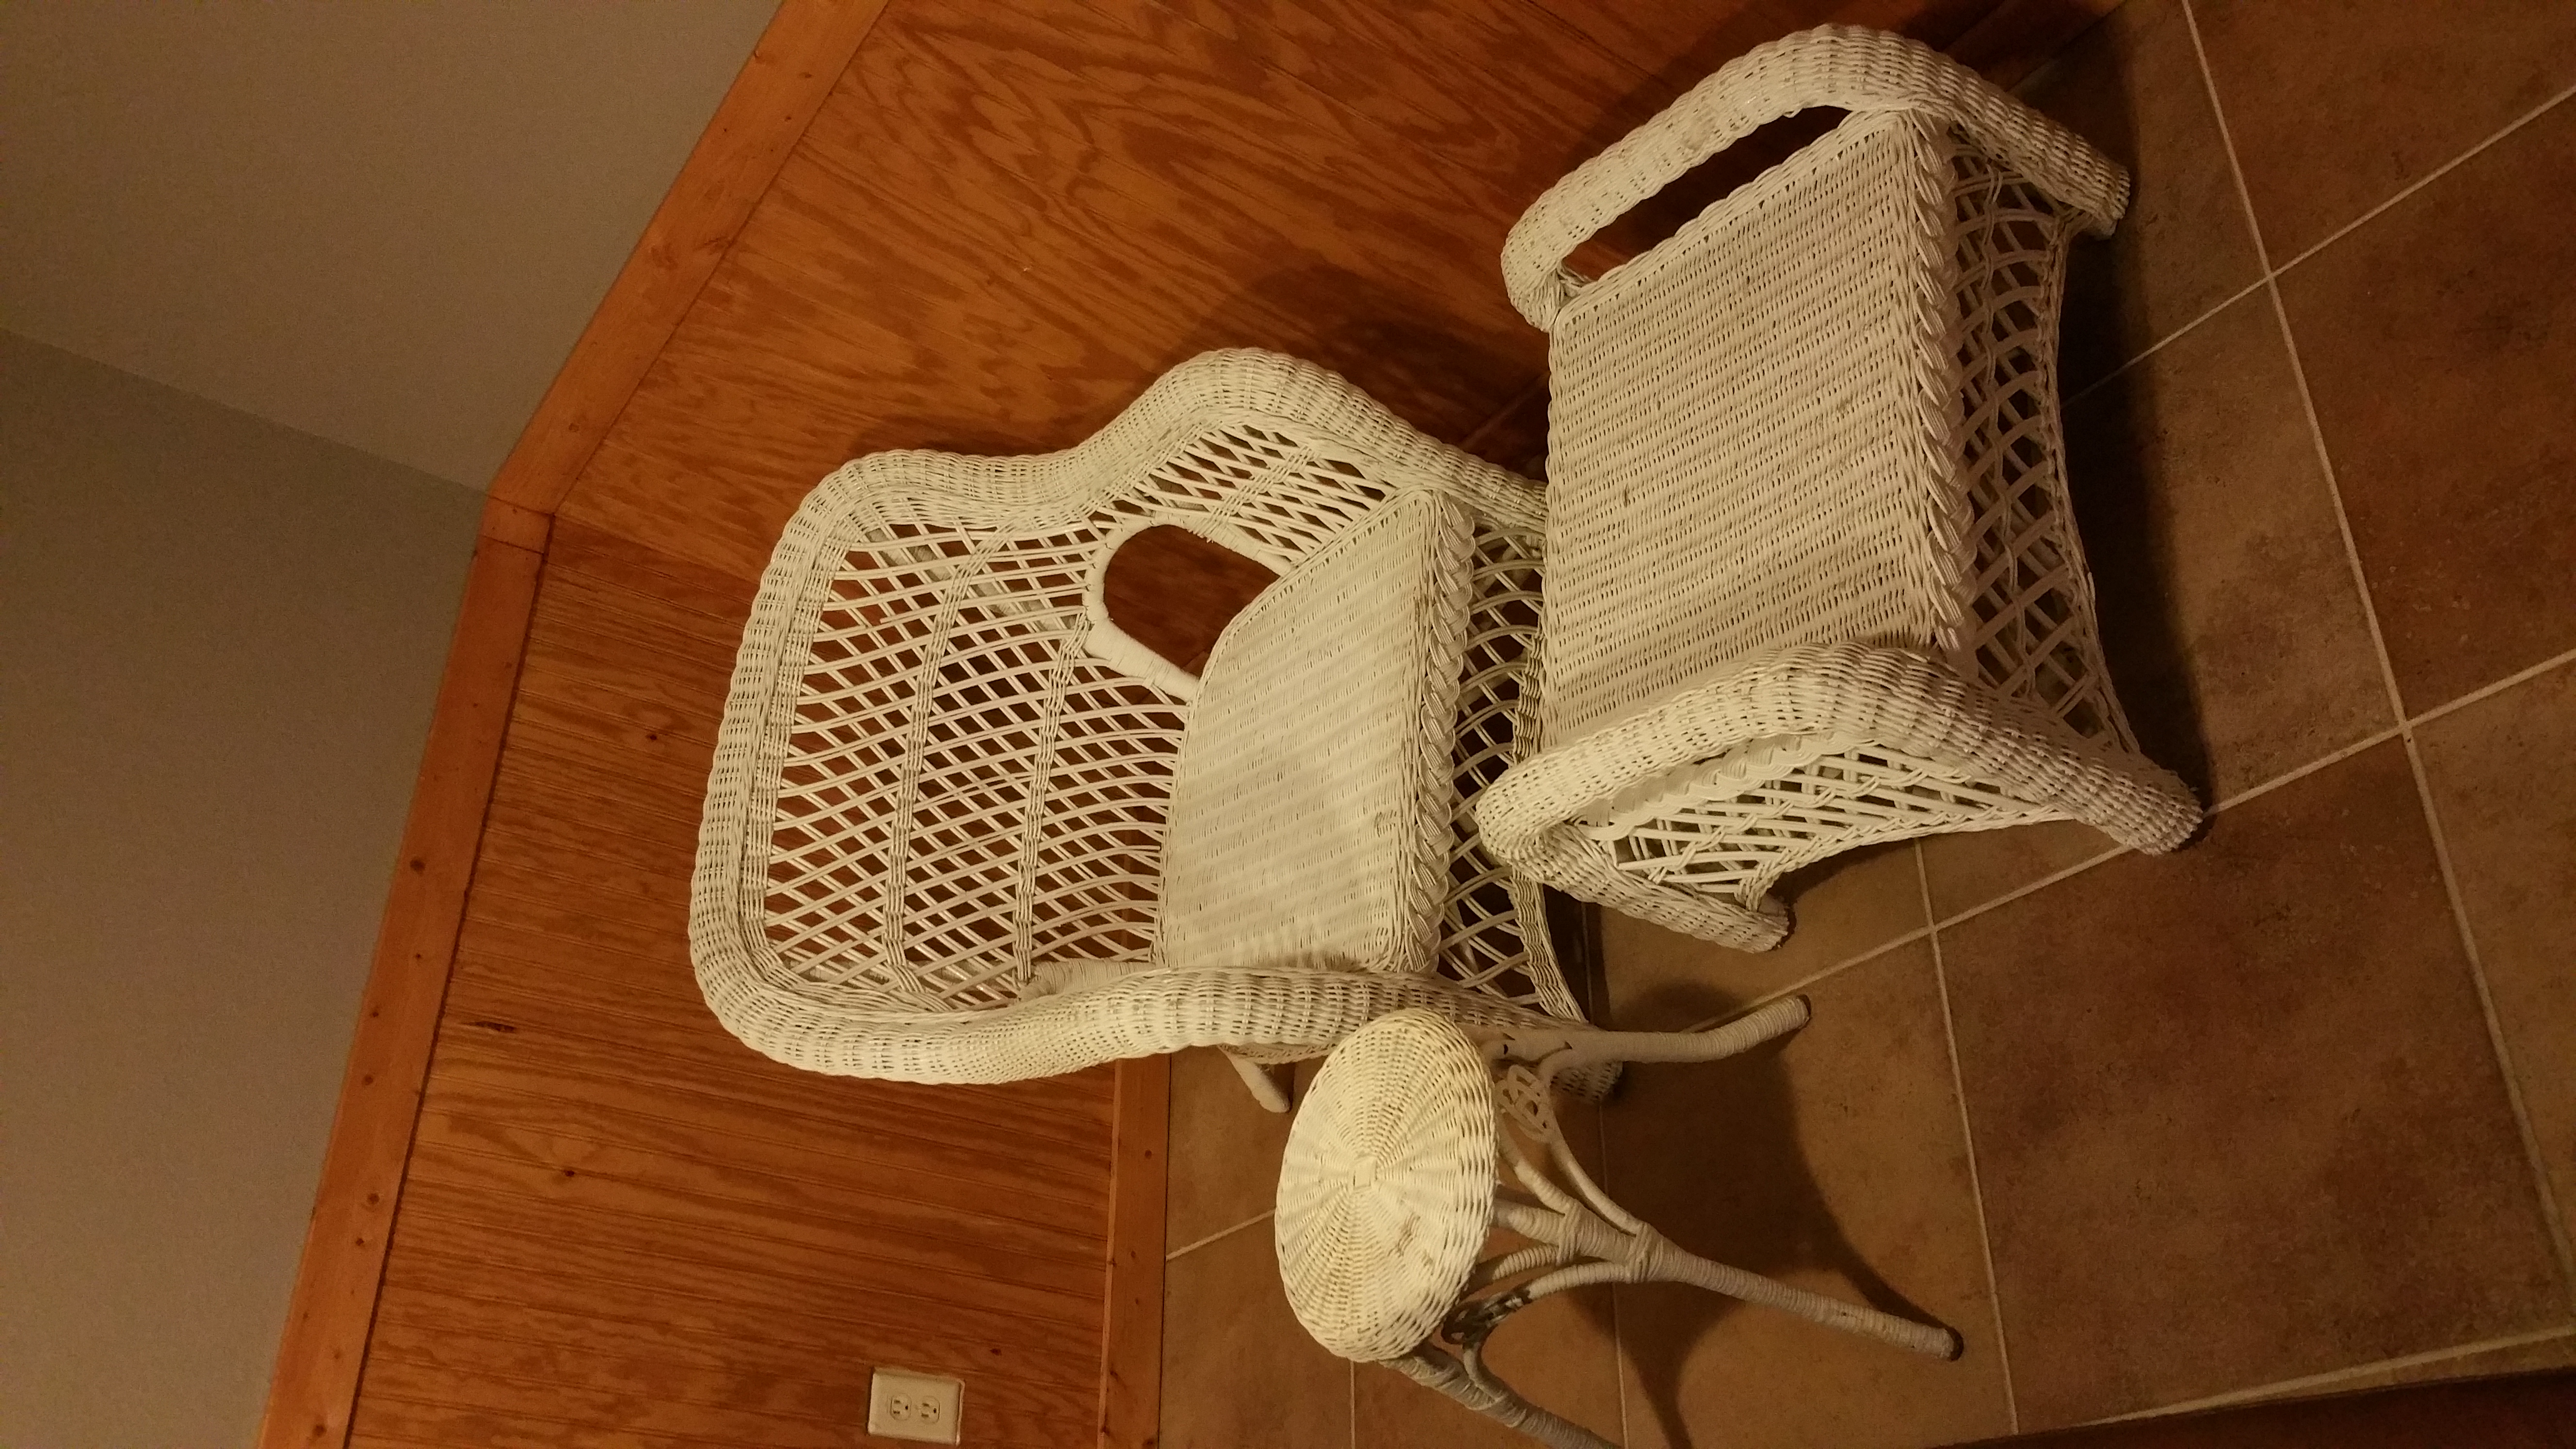 Super 3 Piece Wicker Chair Table And Foot Stool Rose Hill Cjindustries Chair Design For Home Cjindustriesco